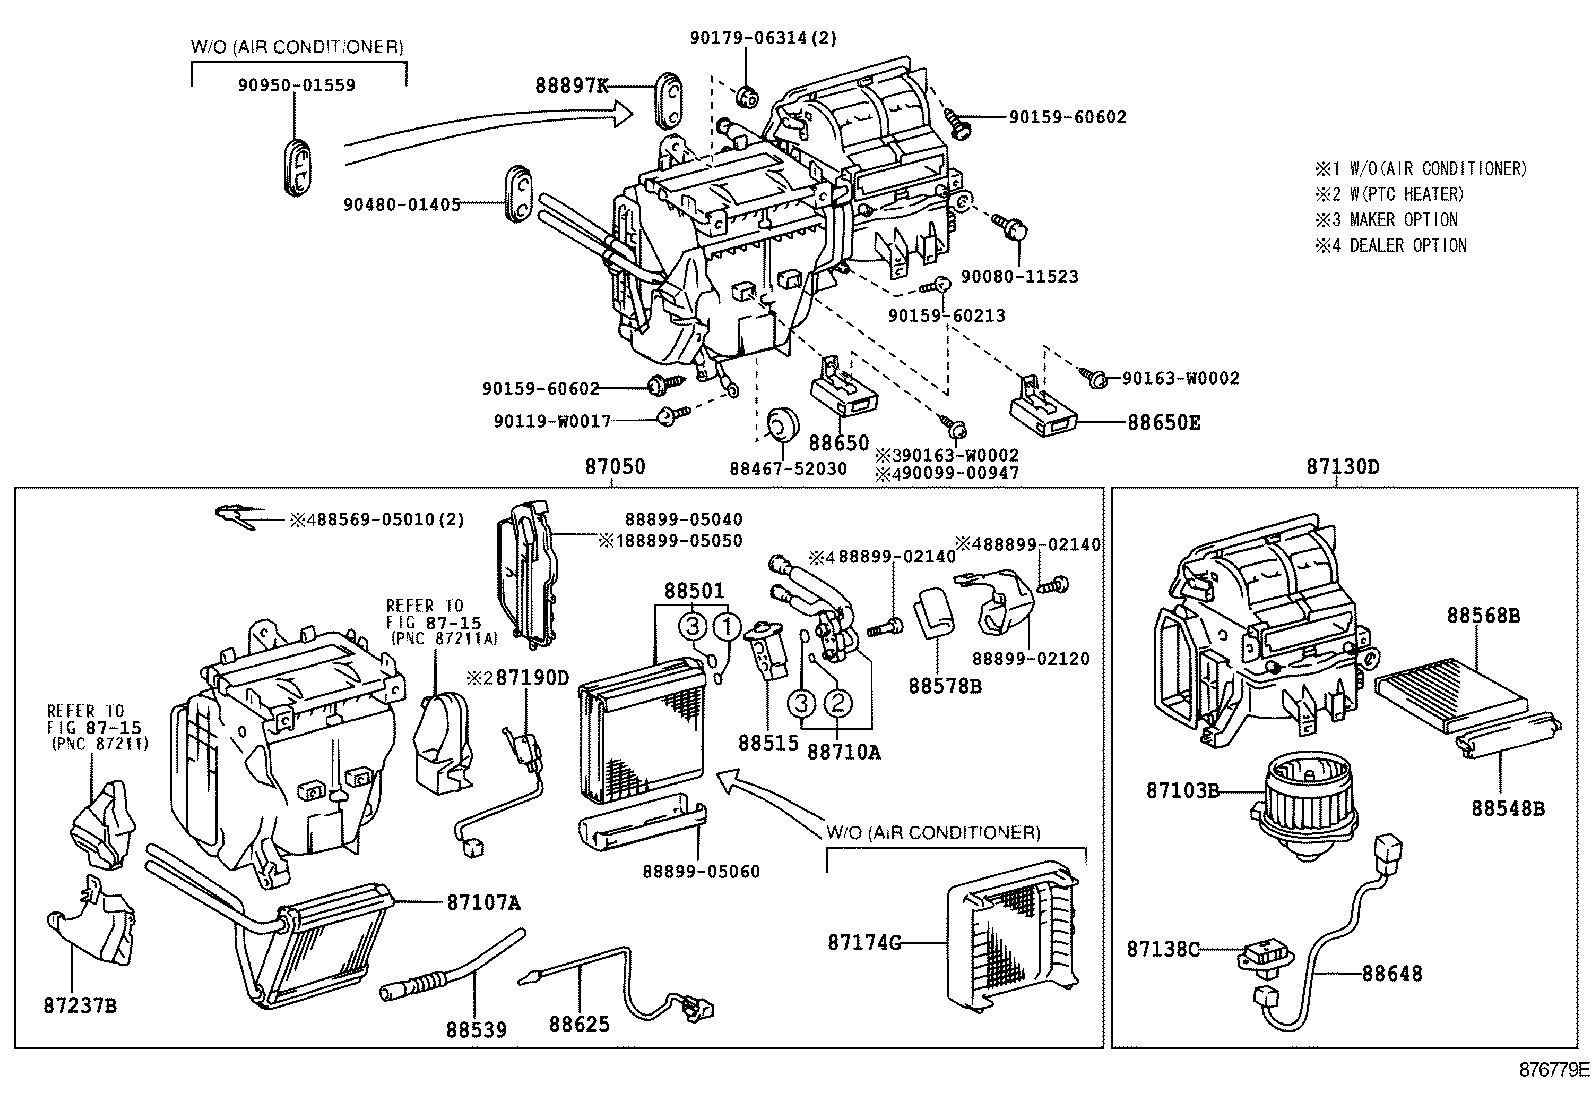 heat engine diagram air conditioner toyota corolla hb ukpnde120l-dhmdyw - electrical - heating ... 1997 ford explorer fuse diagram air conditioner